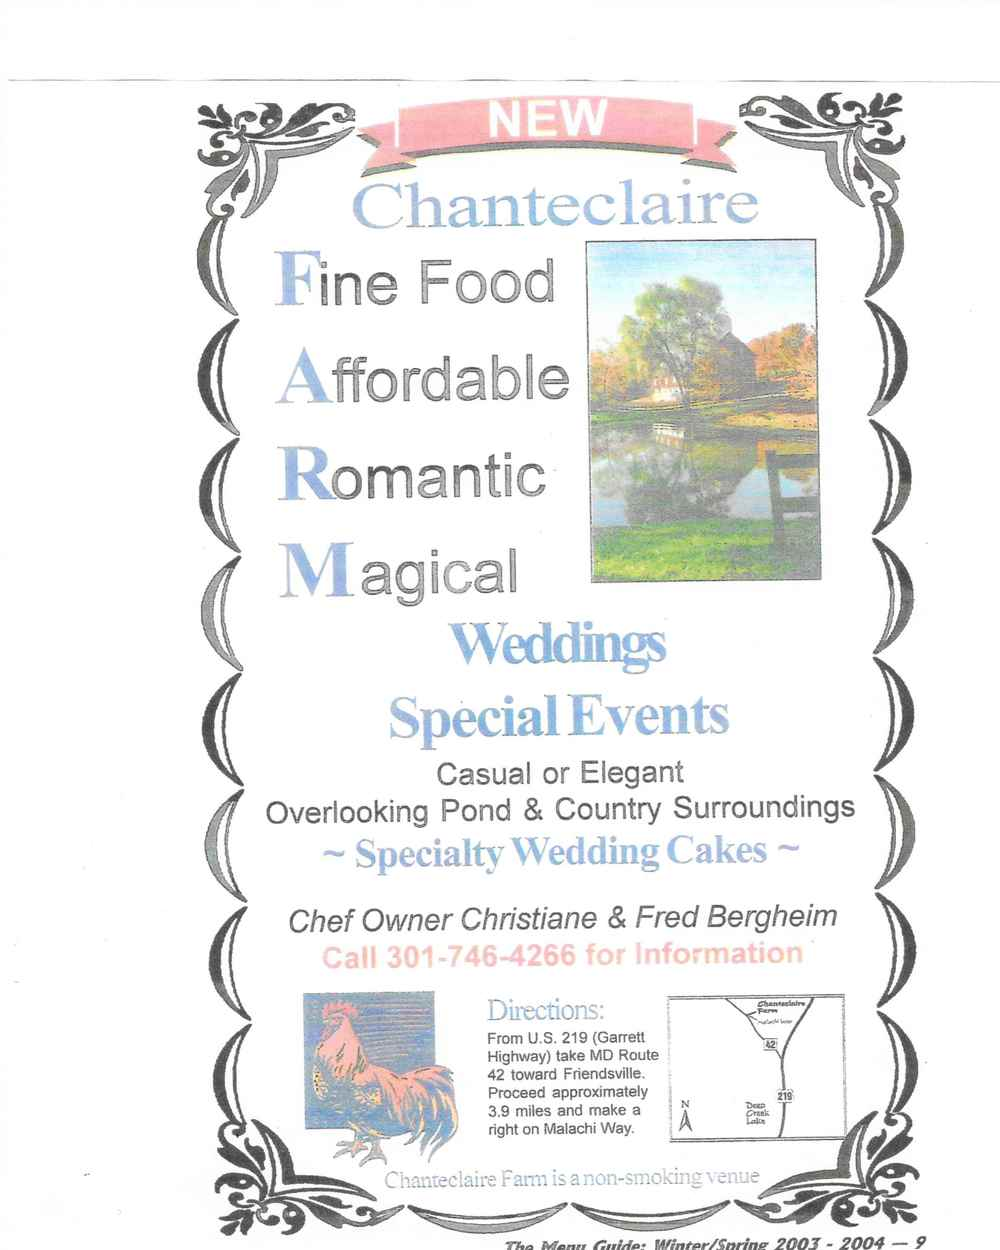 A 2003 ad for Chanteclaire Farm